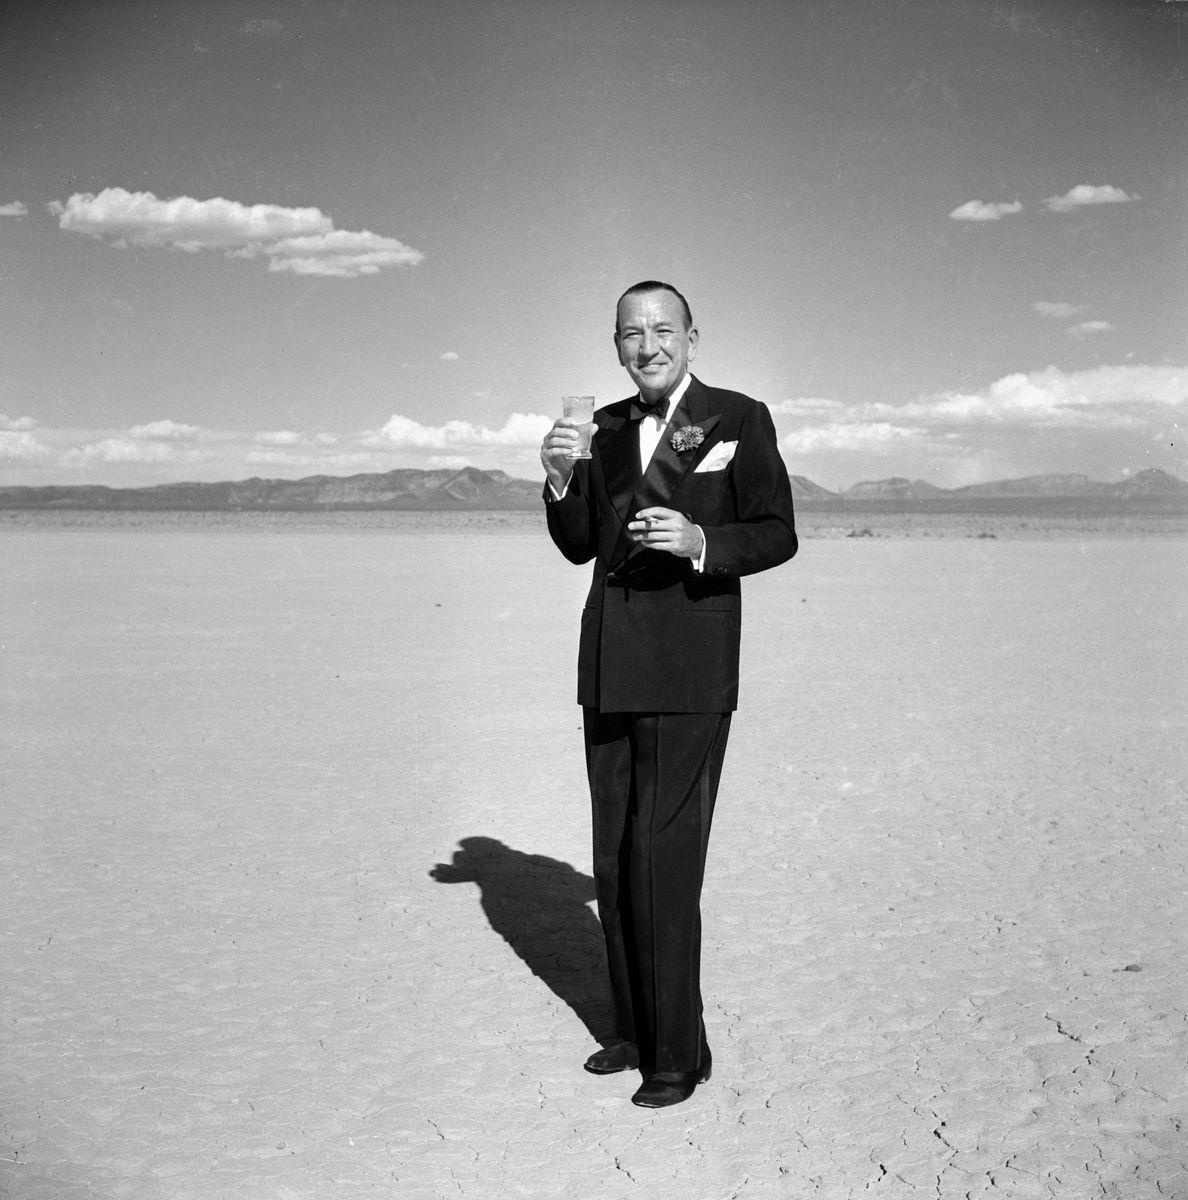 Slide 47 of 50: In a photo that sells the allure of the desert, actor Sir Noël Coward poses in a tuxedo with a cocktail and a cigarette in 1955.